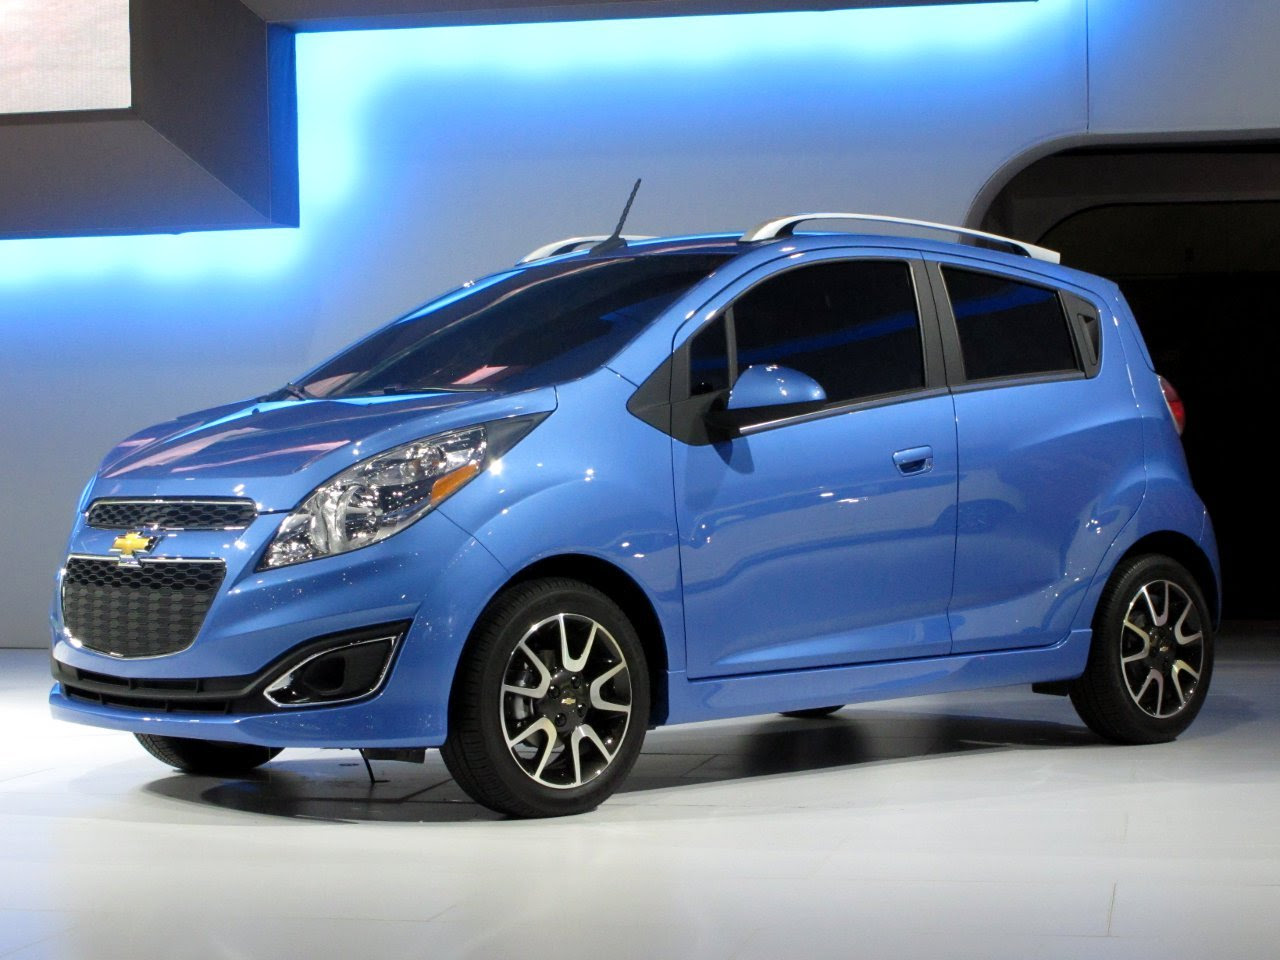 Fotos De Chevrolet Spark 5puertas Pictures to pin on Pinterest